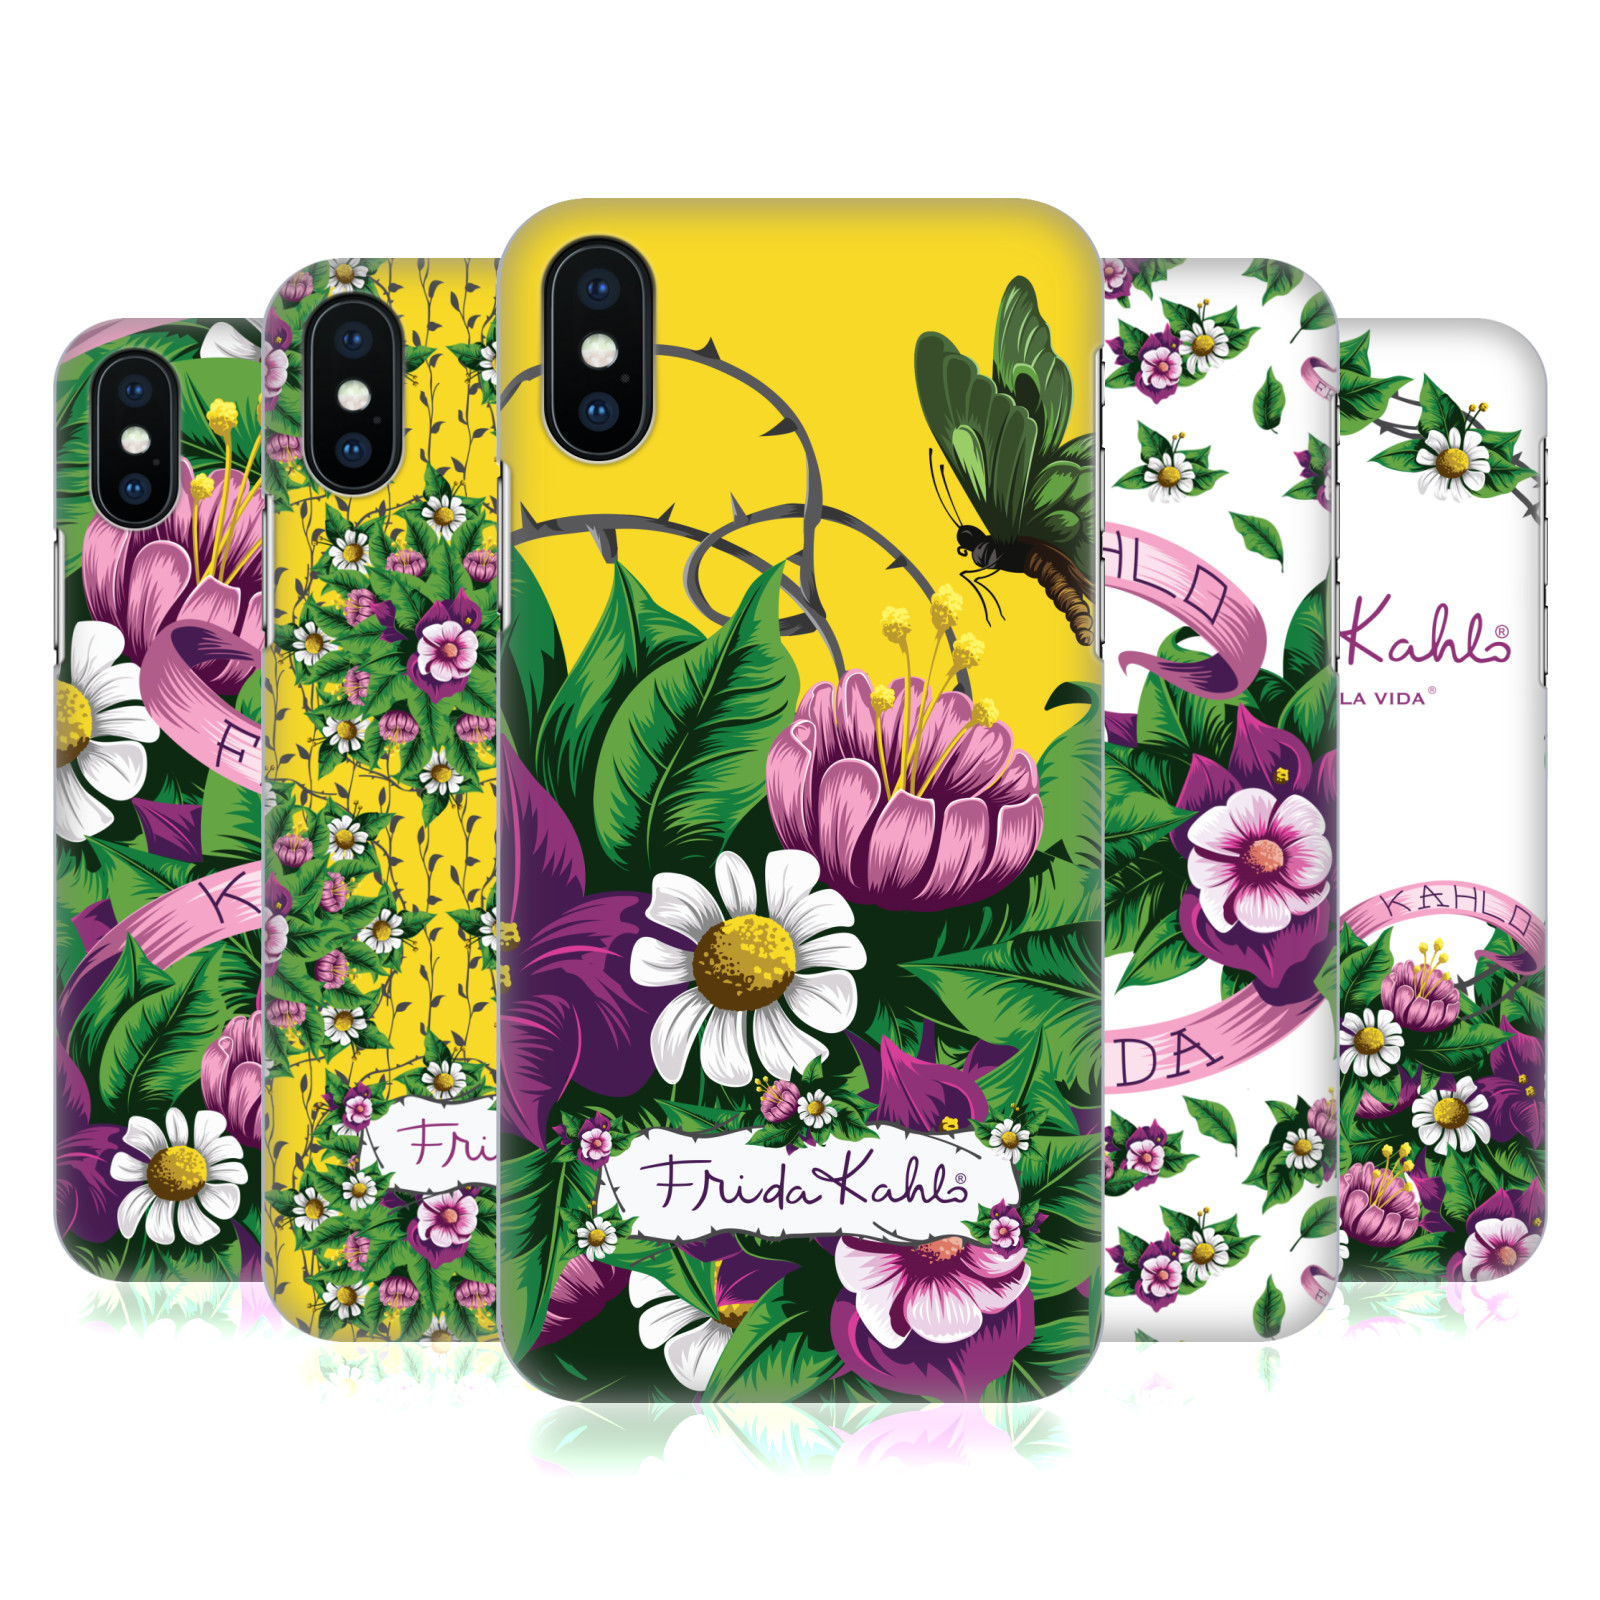 Frida Kahlo Purple Florals